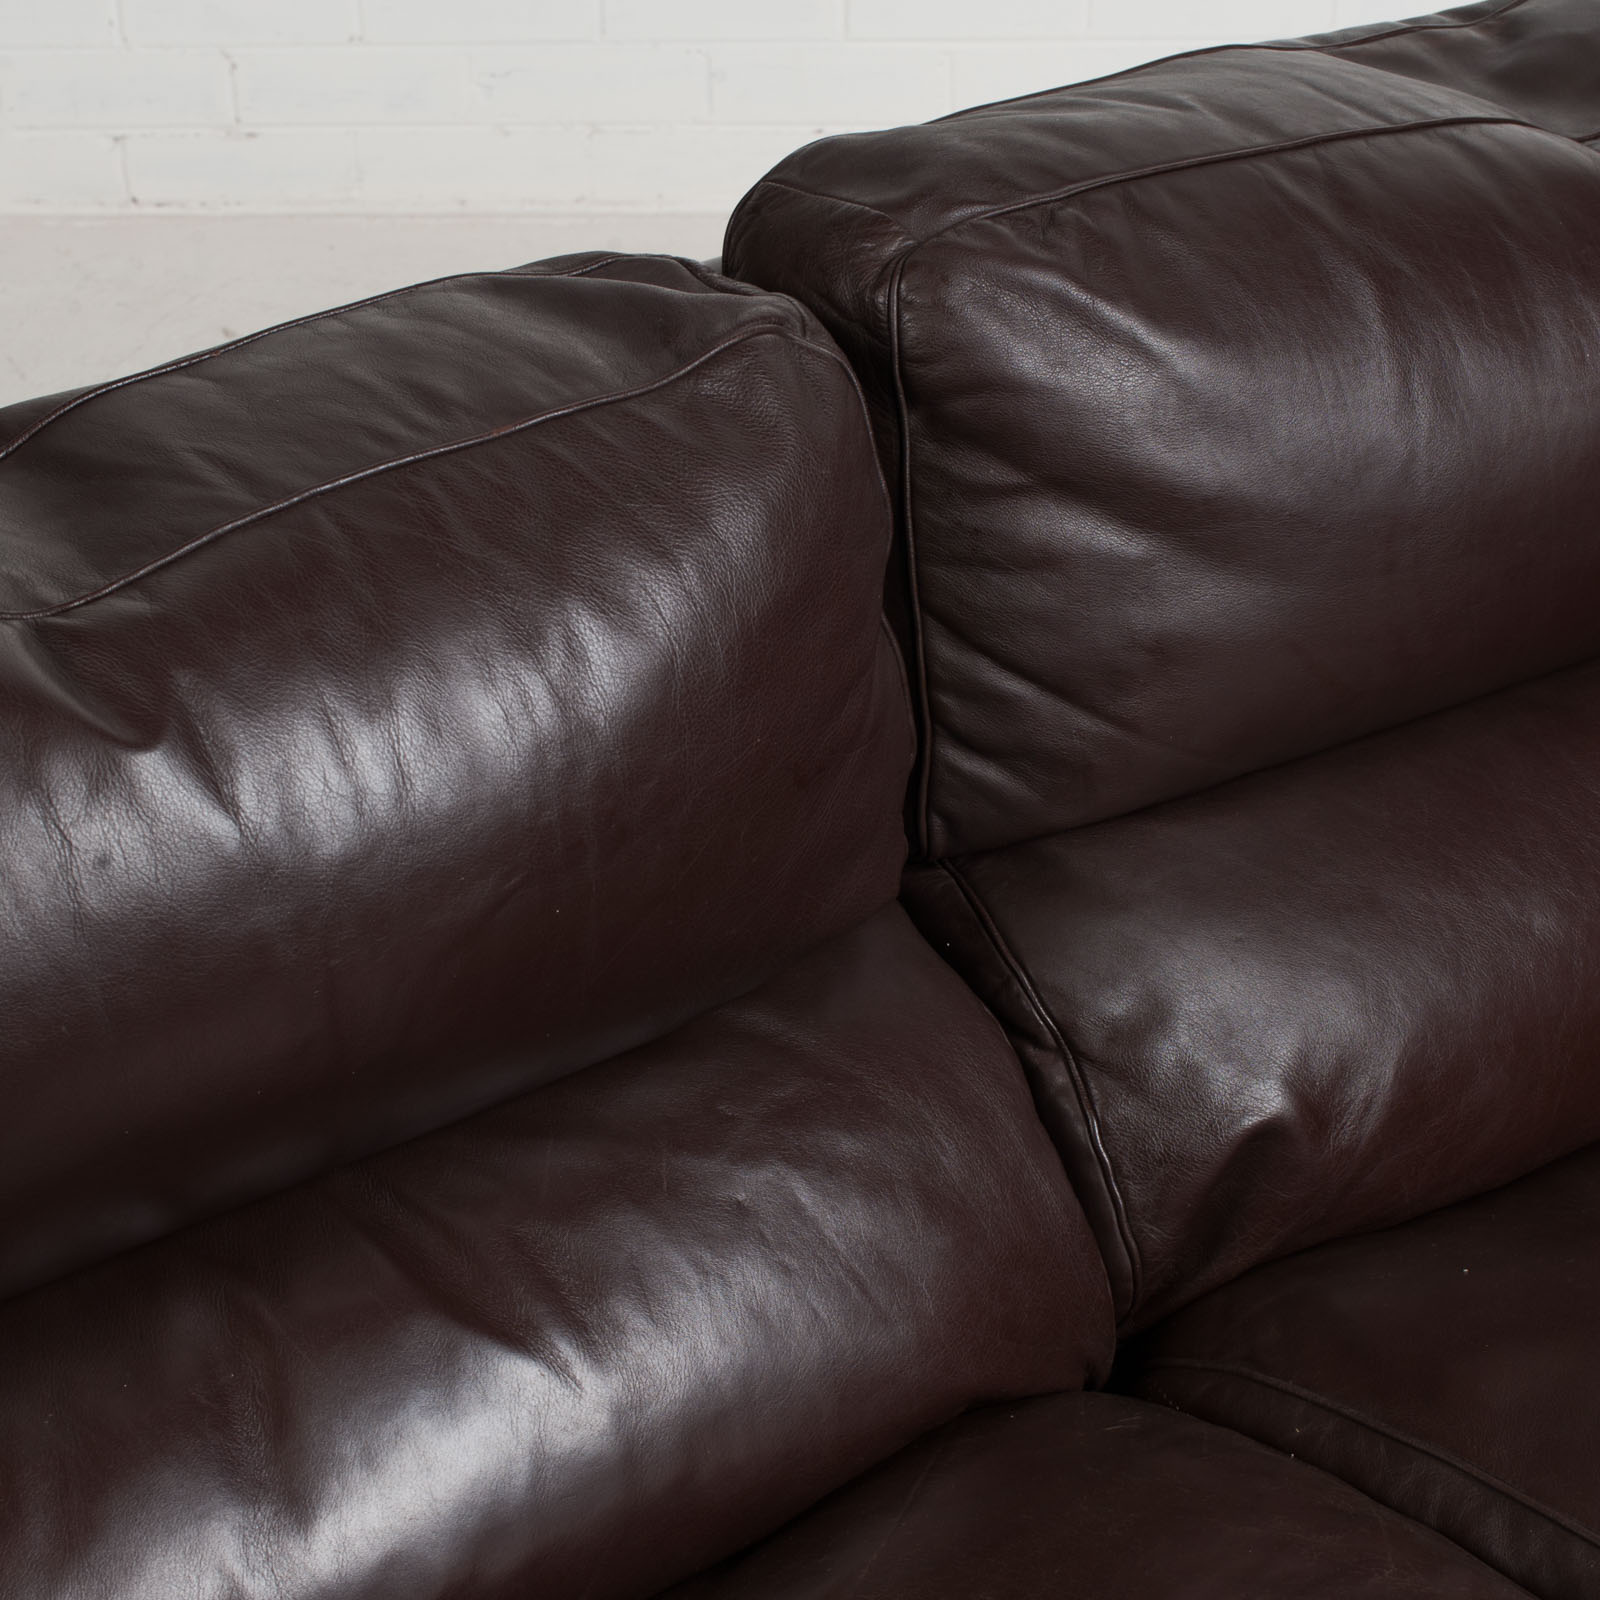 2 Seat Sofa By Tito Agnoli For Poltrona Frau In Chocolate Leather 1970s Italy 08